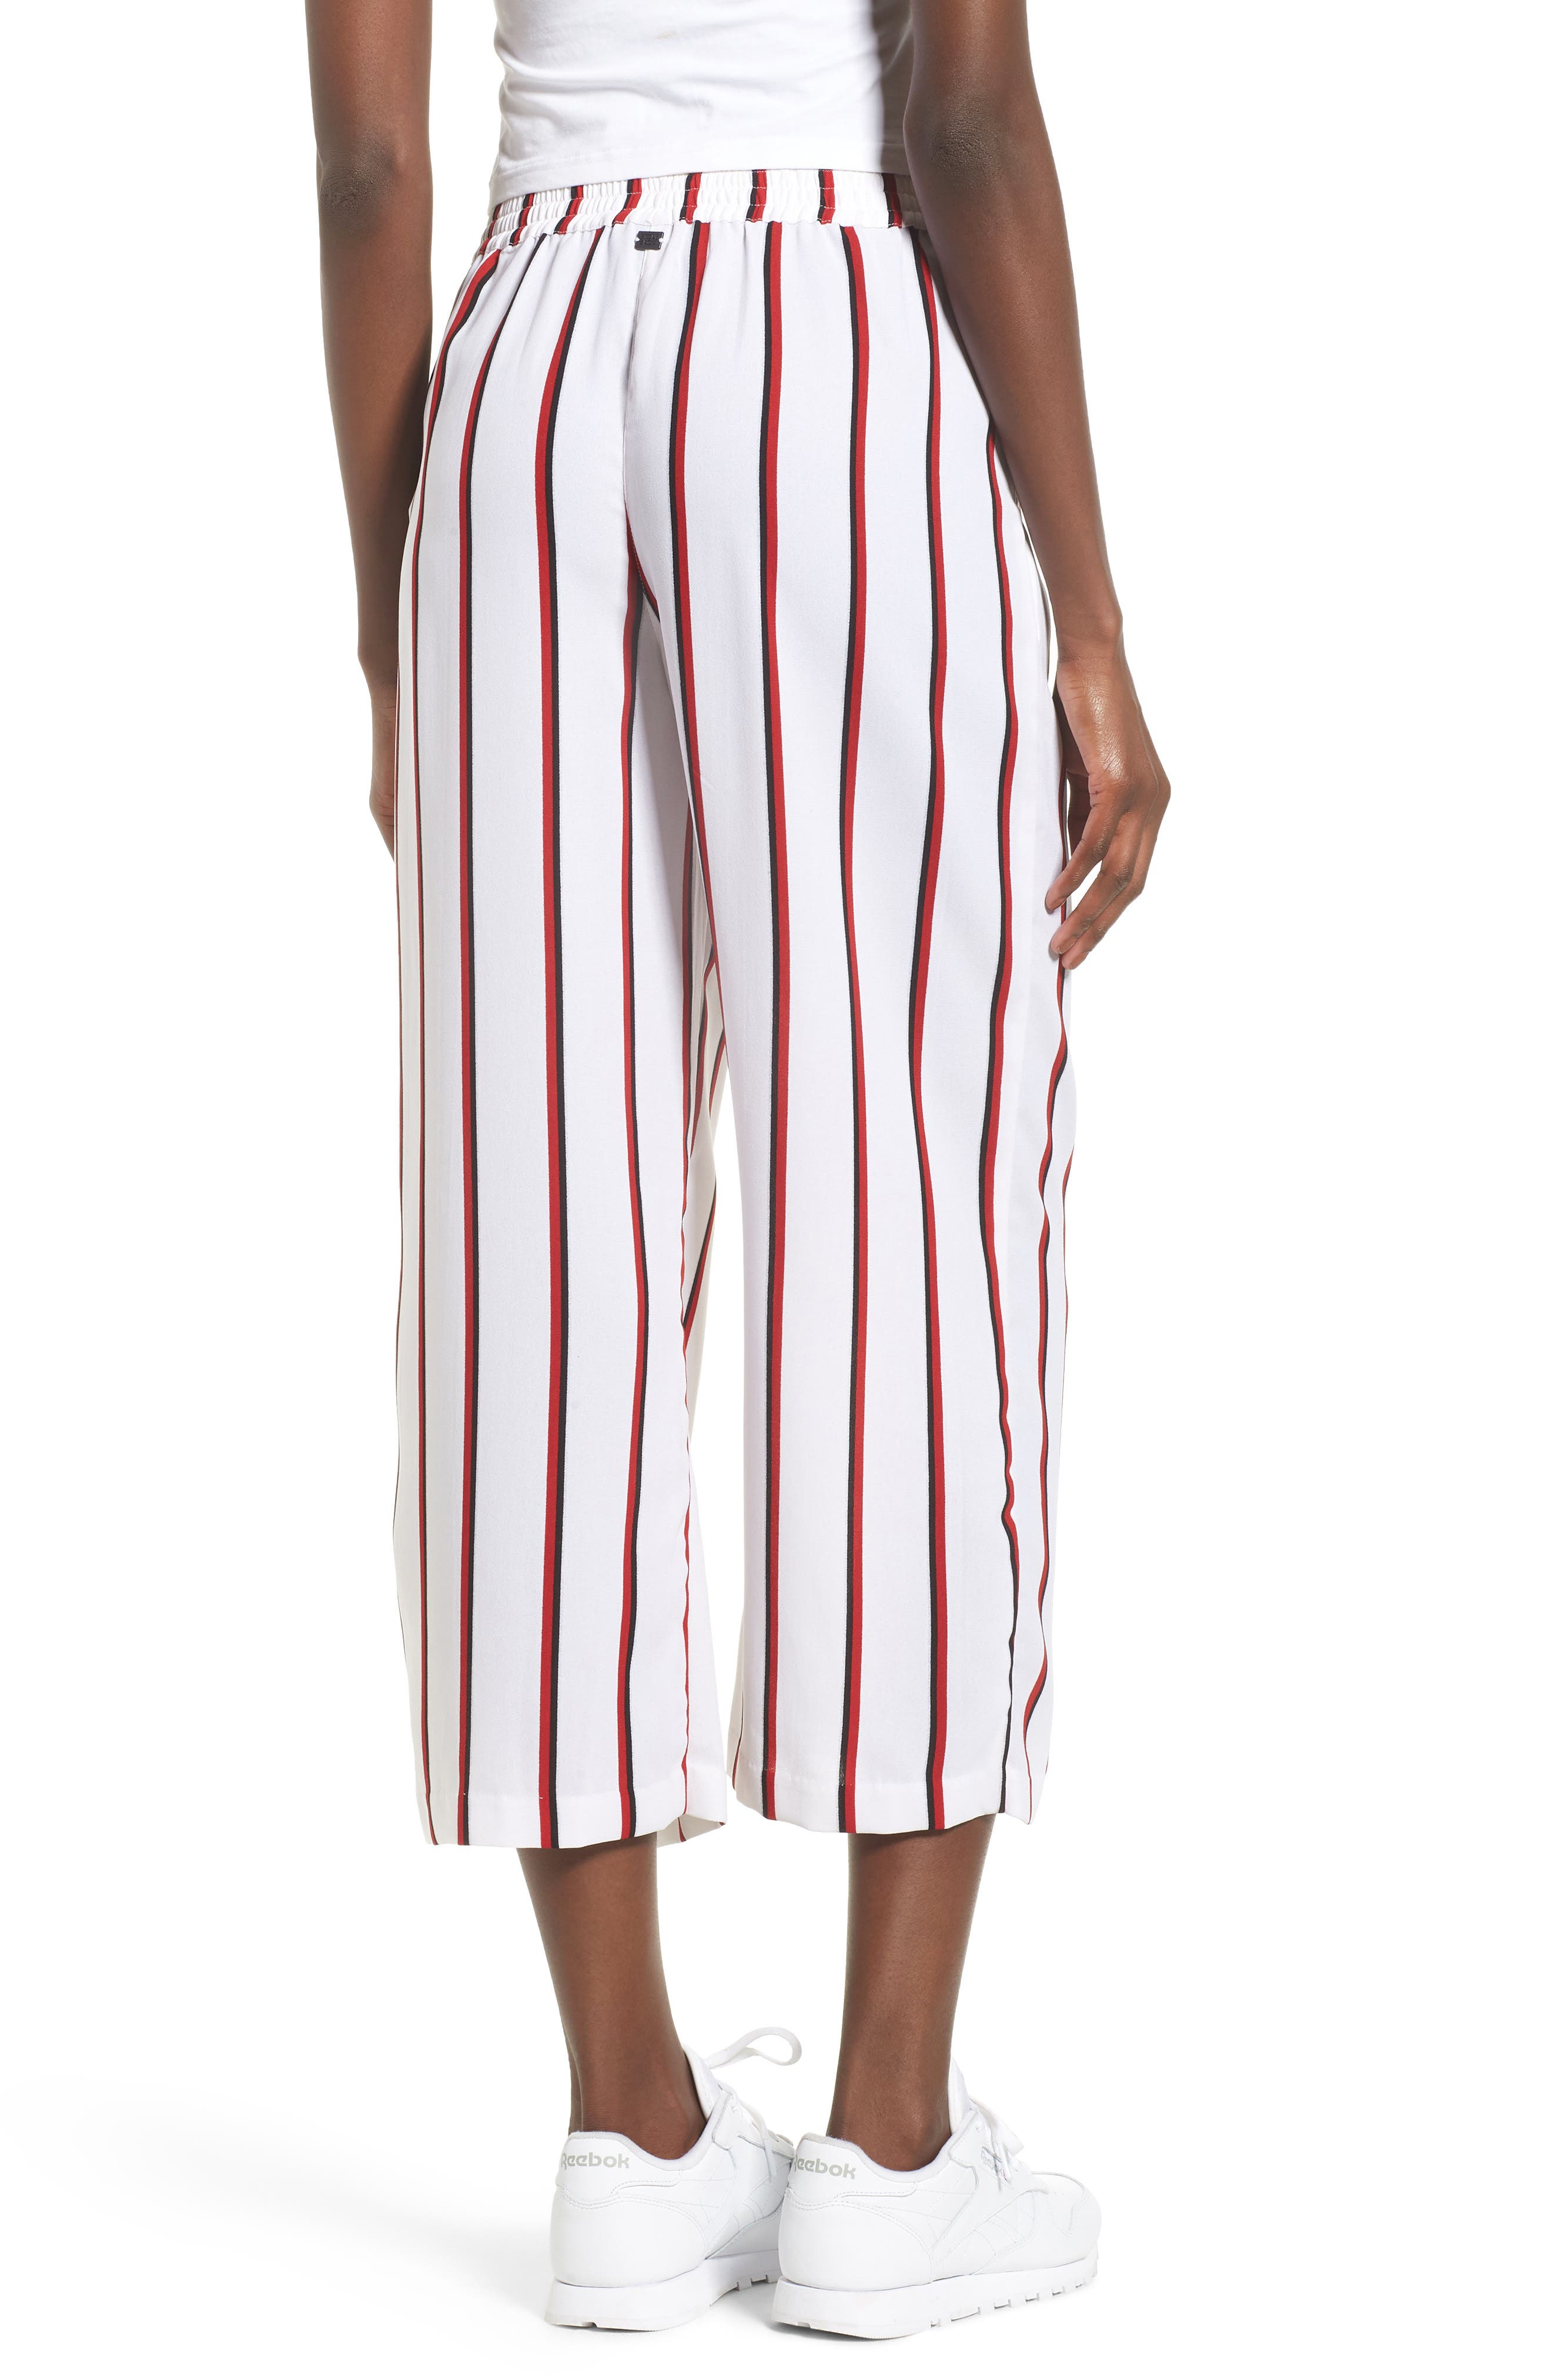 Counting Moons Stripe Culottes,                             Alternate thumbnail 2, color,                             Chili Red